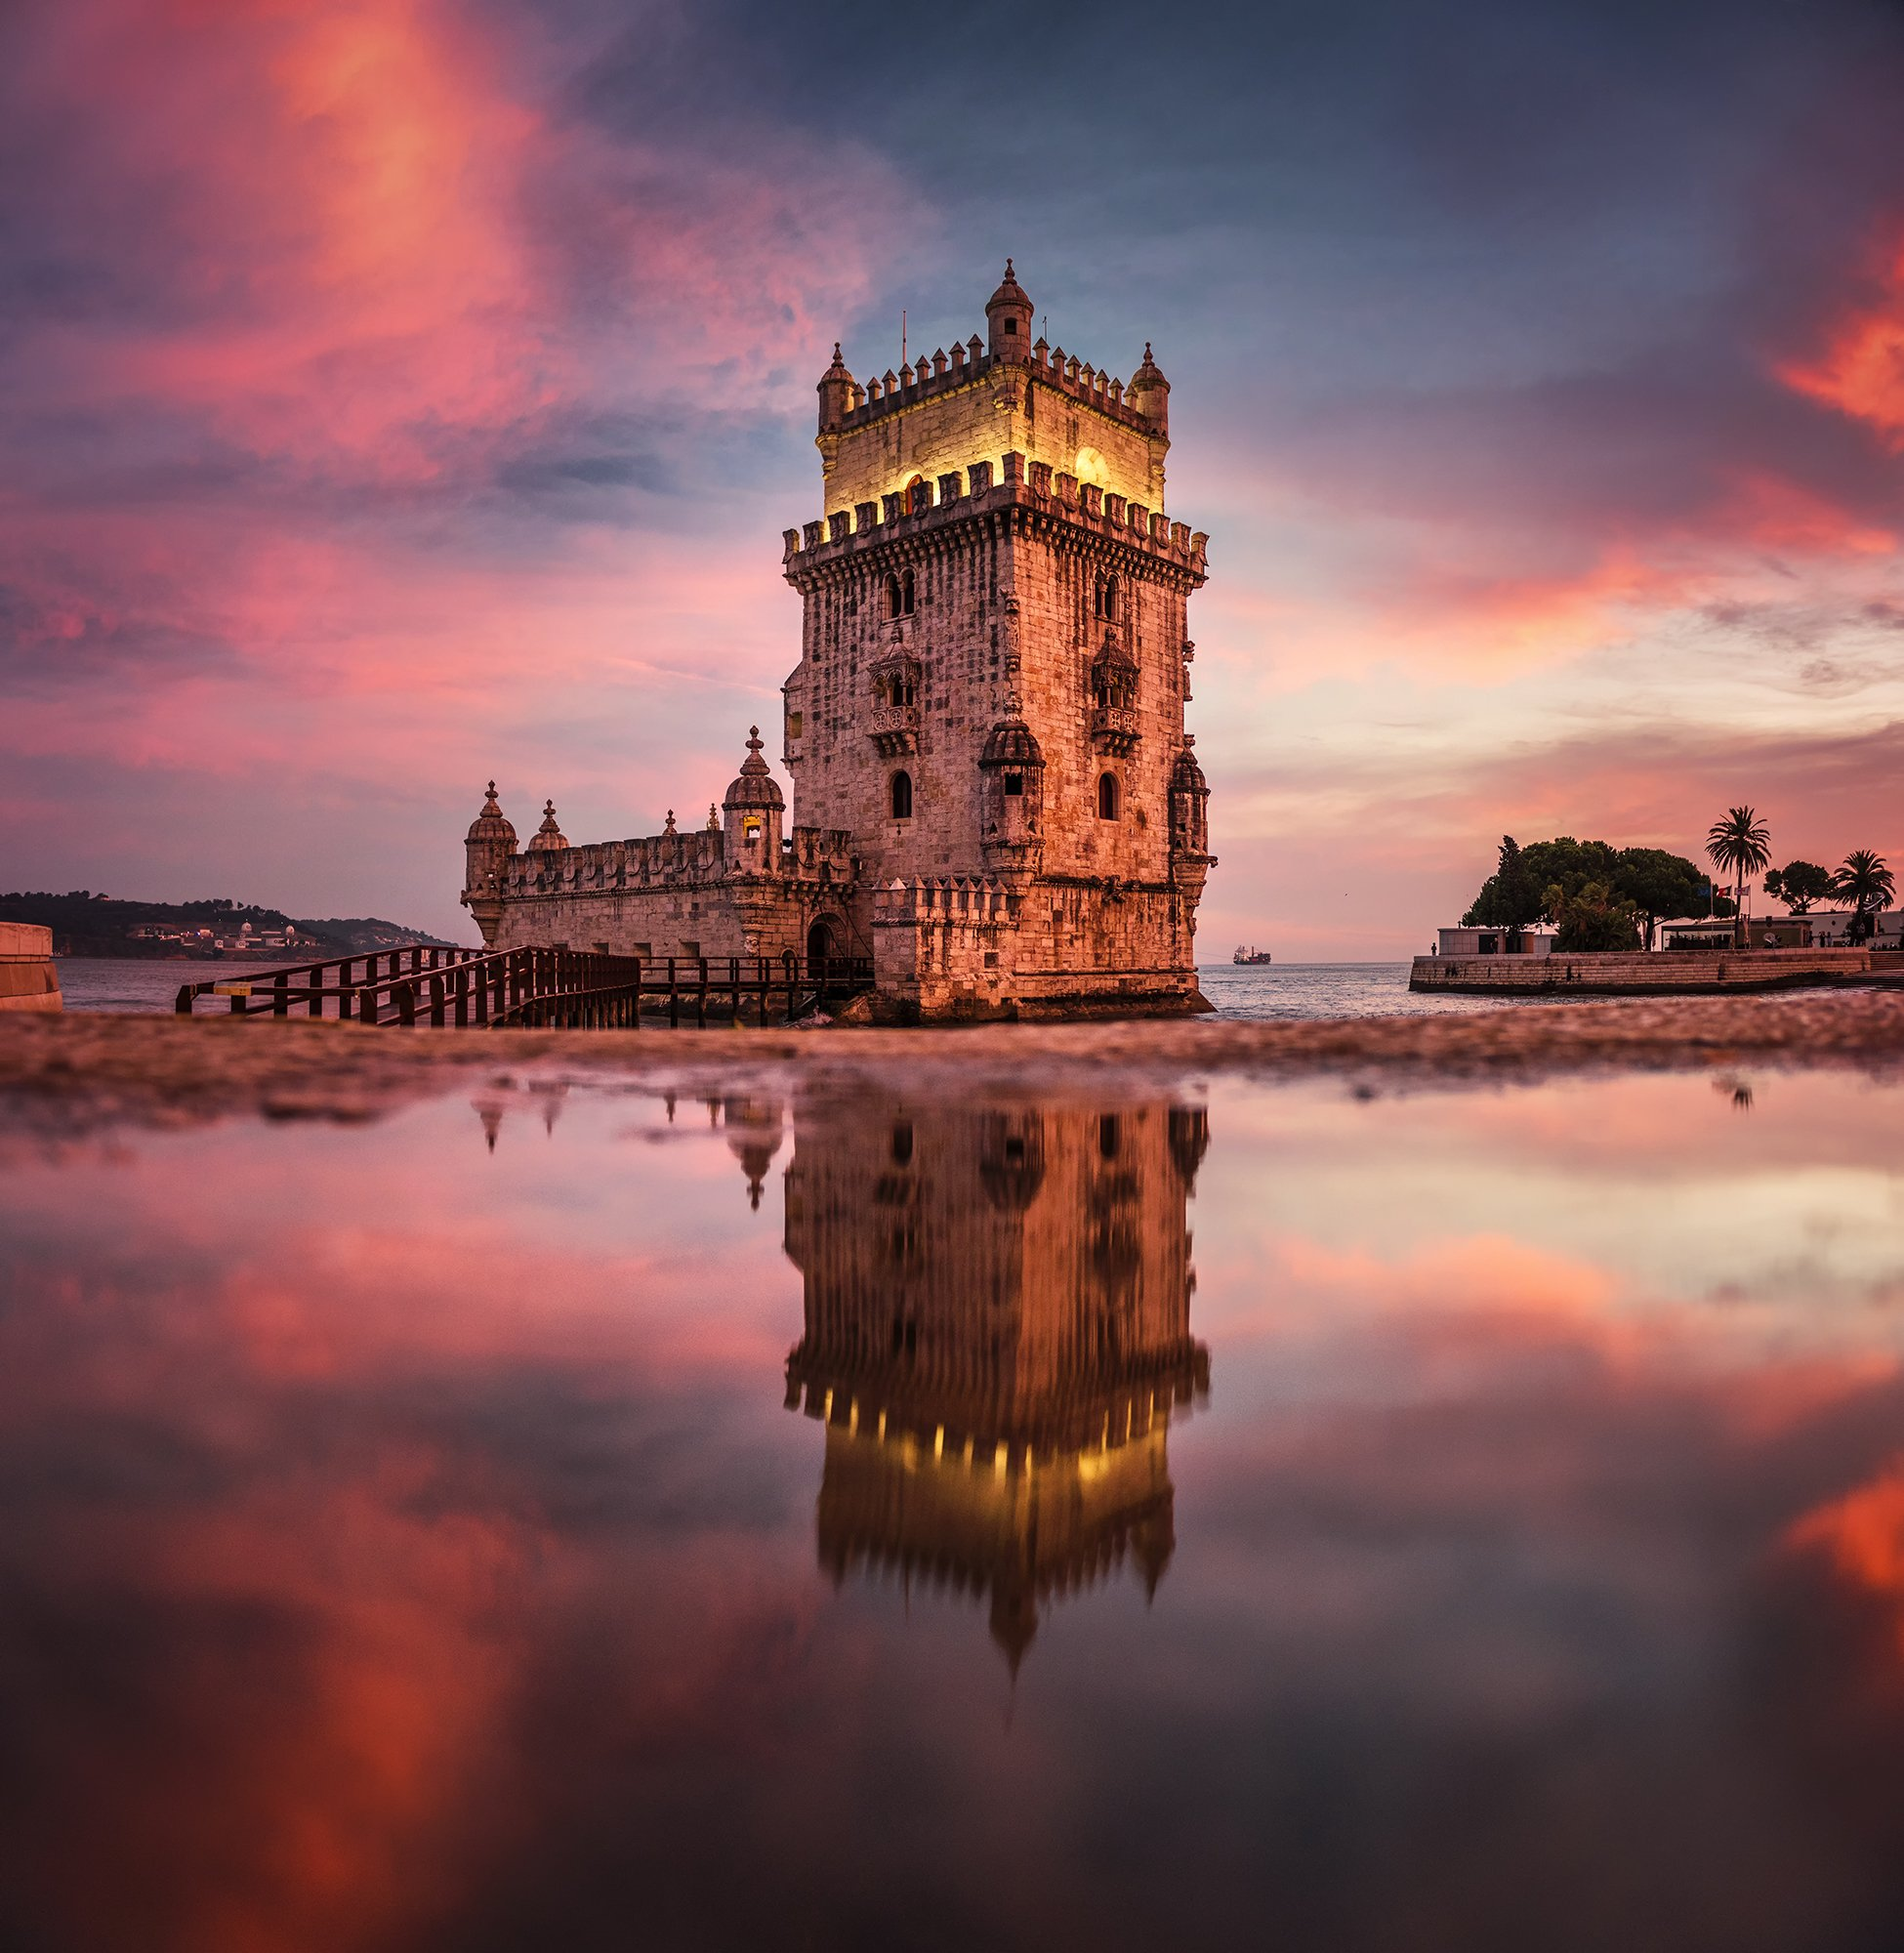 lisbon, portugal, belem, tower, sunset, sun, colors, light,clouds, reflection, architecture, europe,, Bieganski Patryk